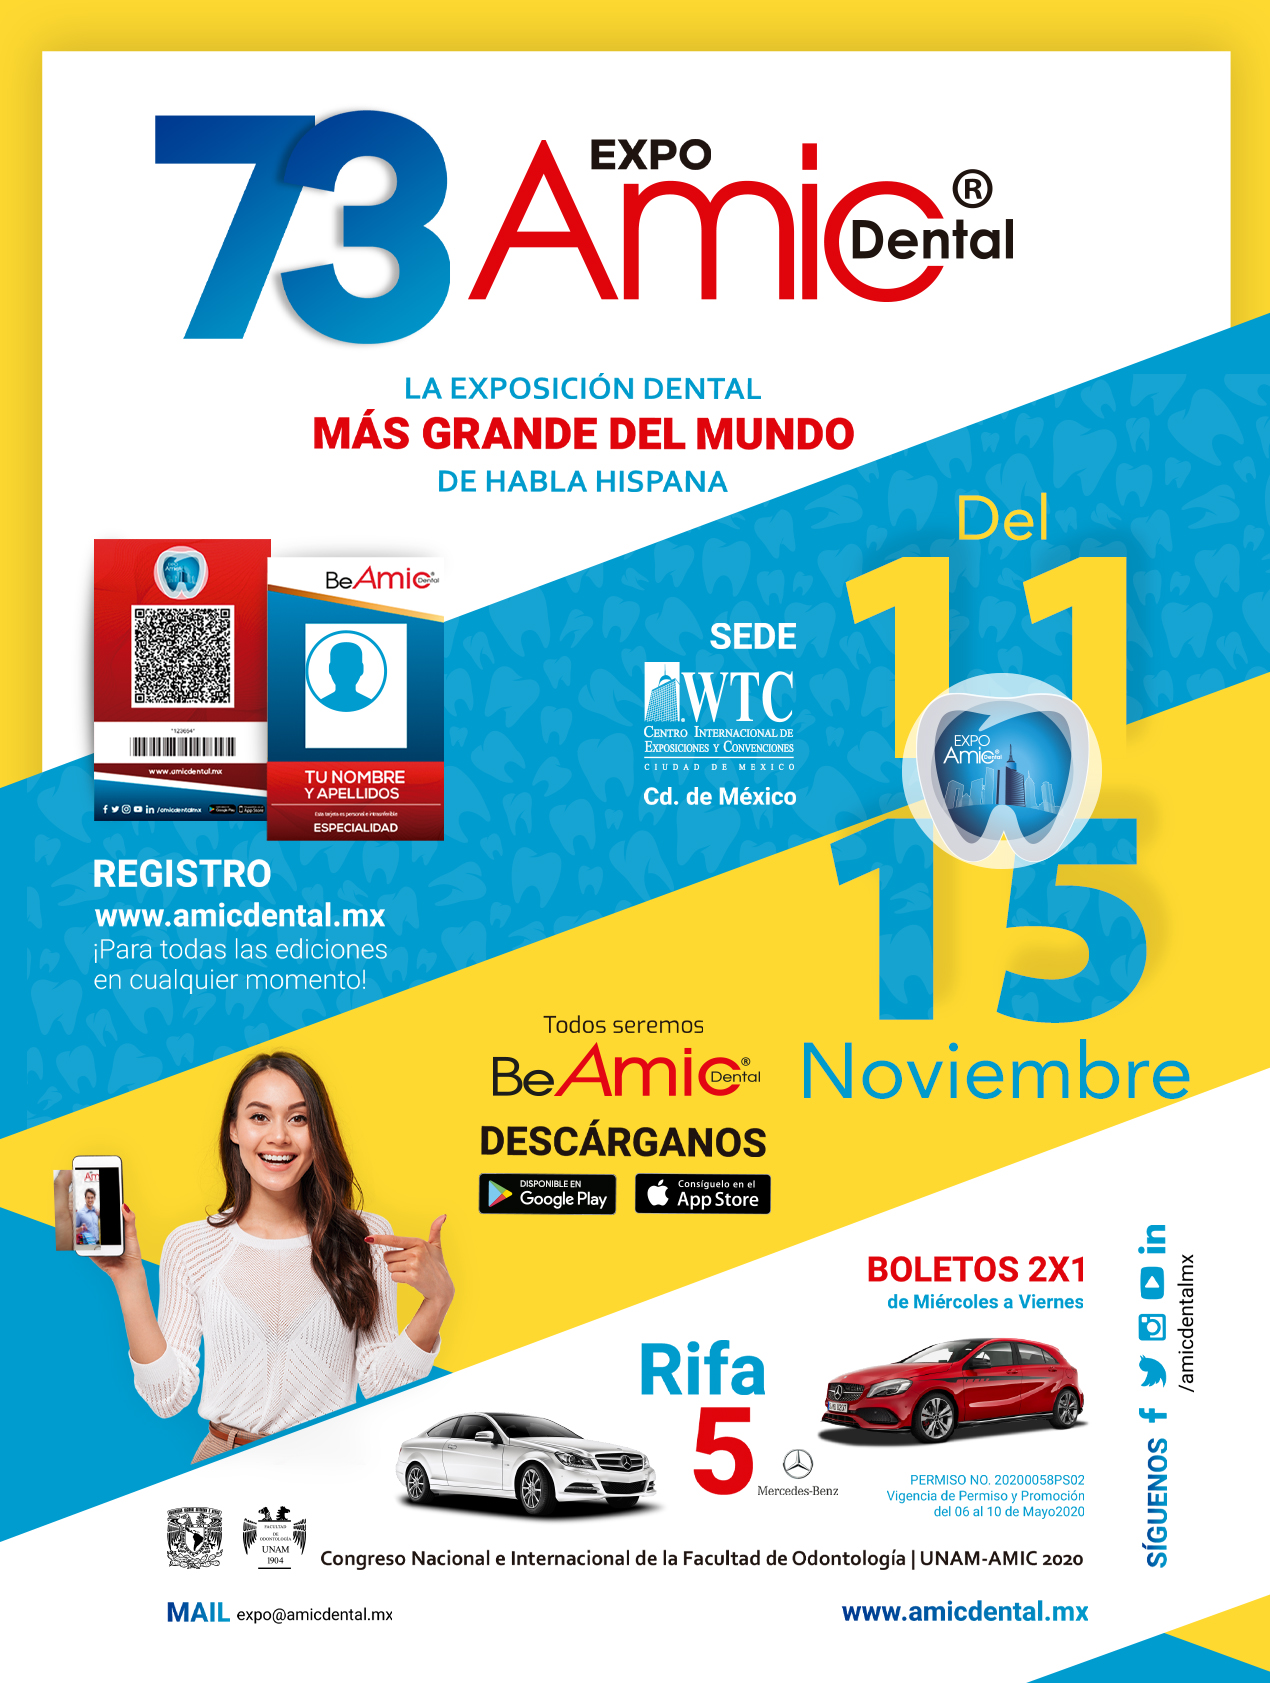 AMIC Dental